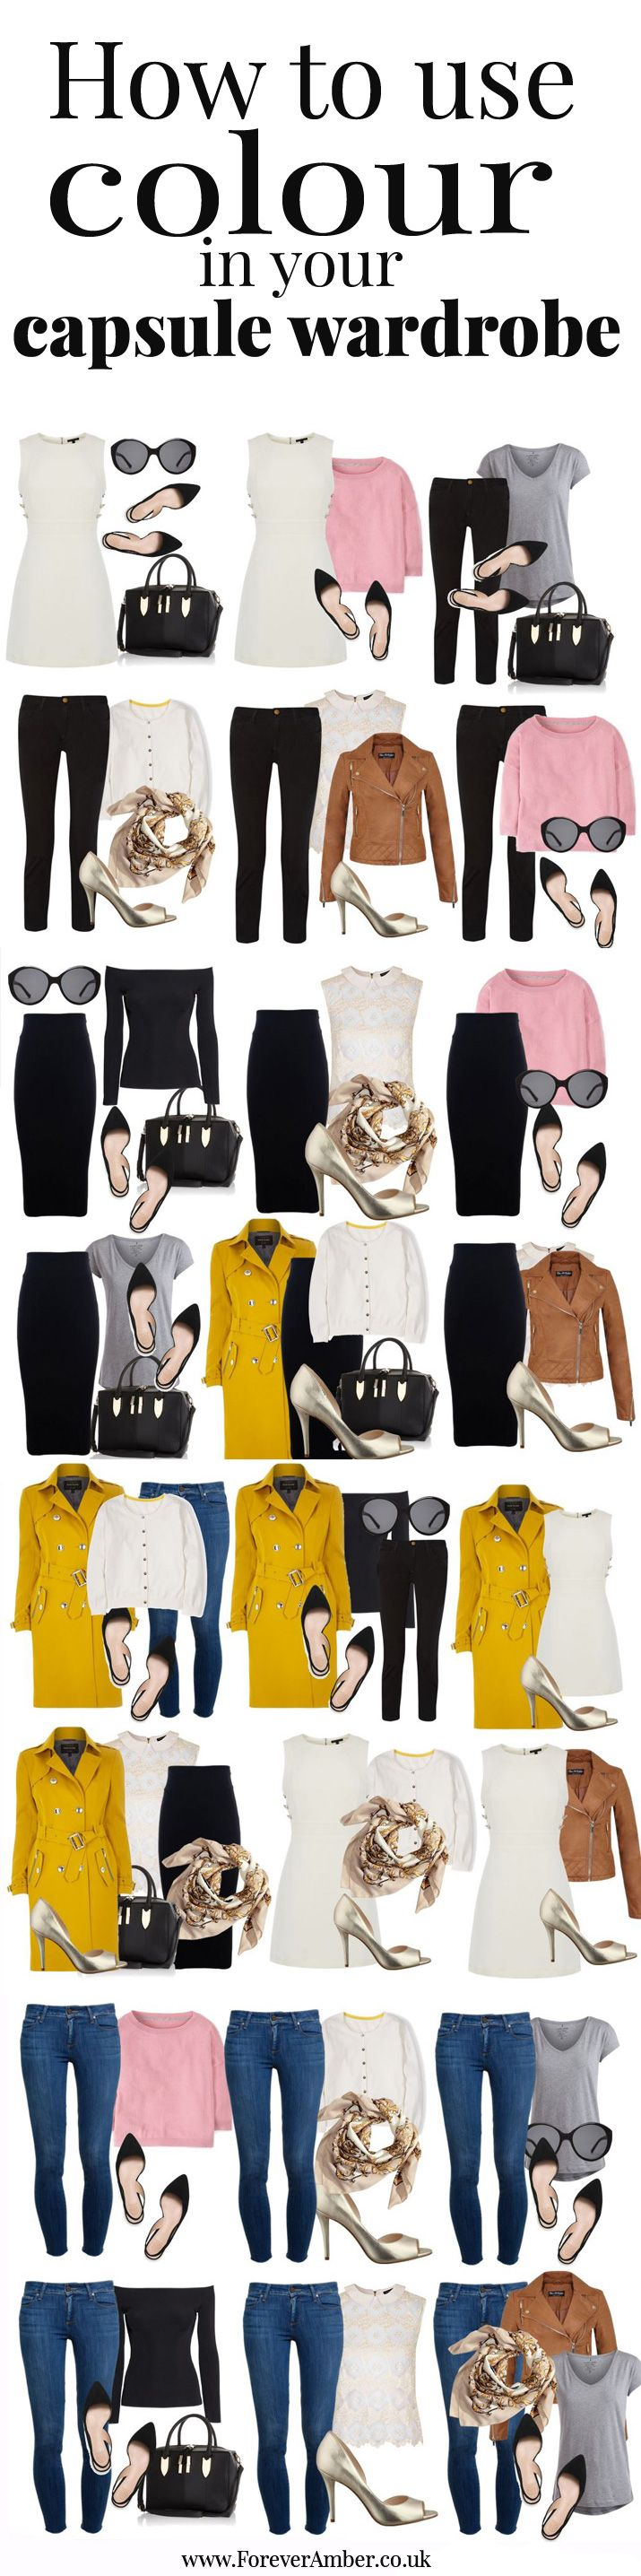 how to use colour in your capsule wardrobe